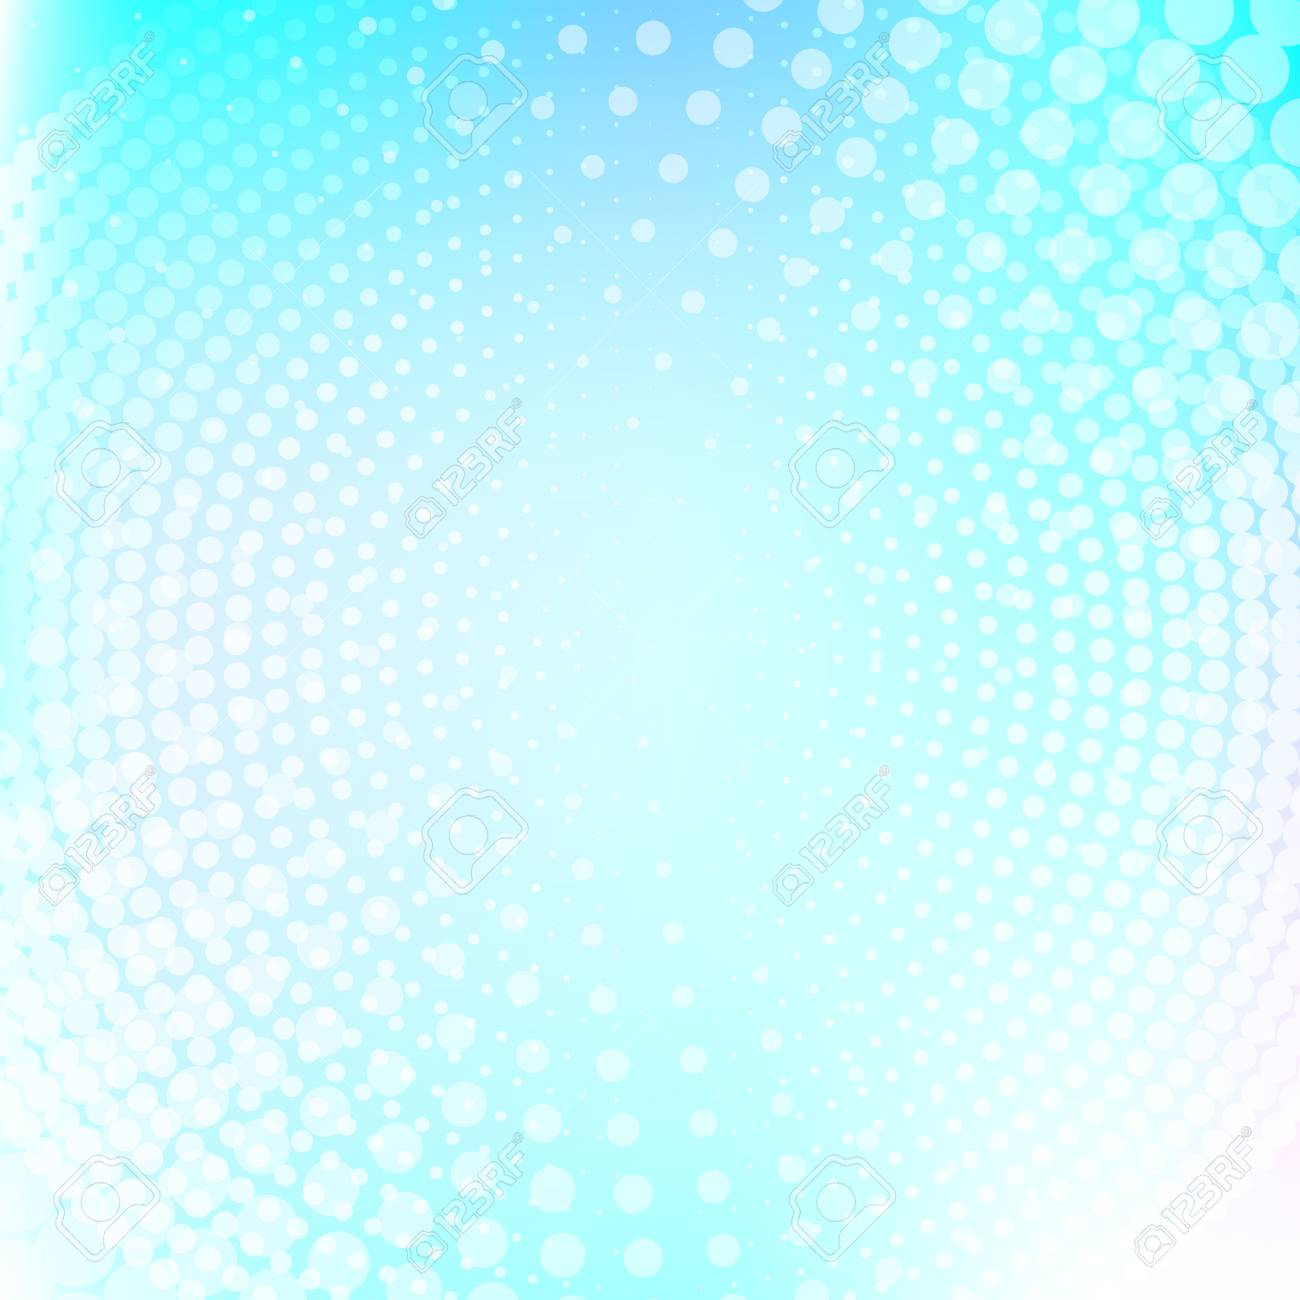 Abstract Halftone Dotted Light Blue Color Texture Vector Background